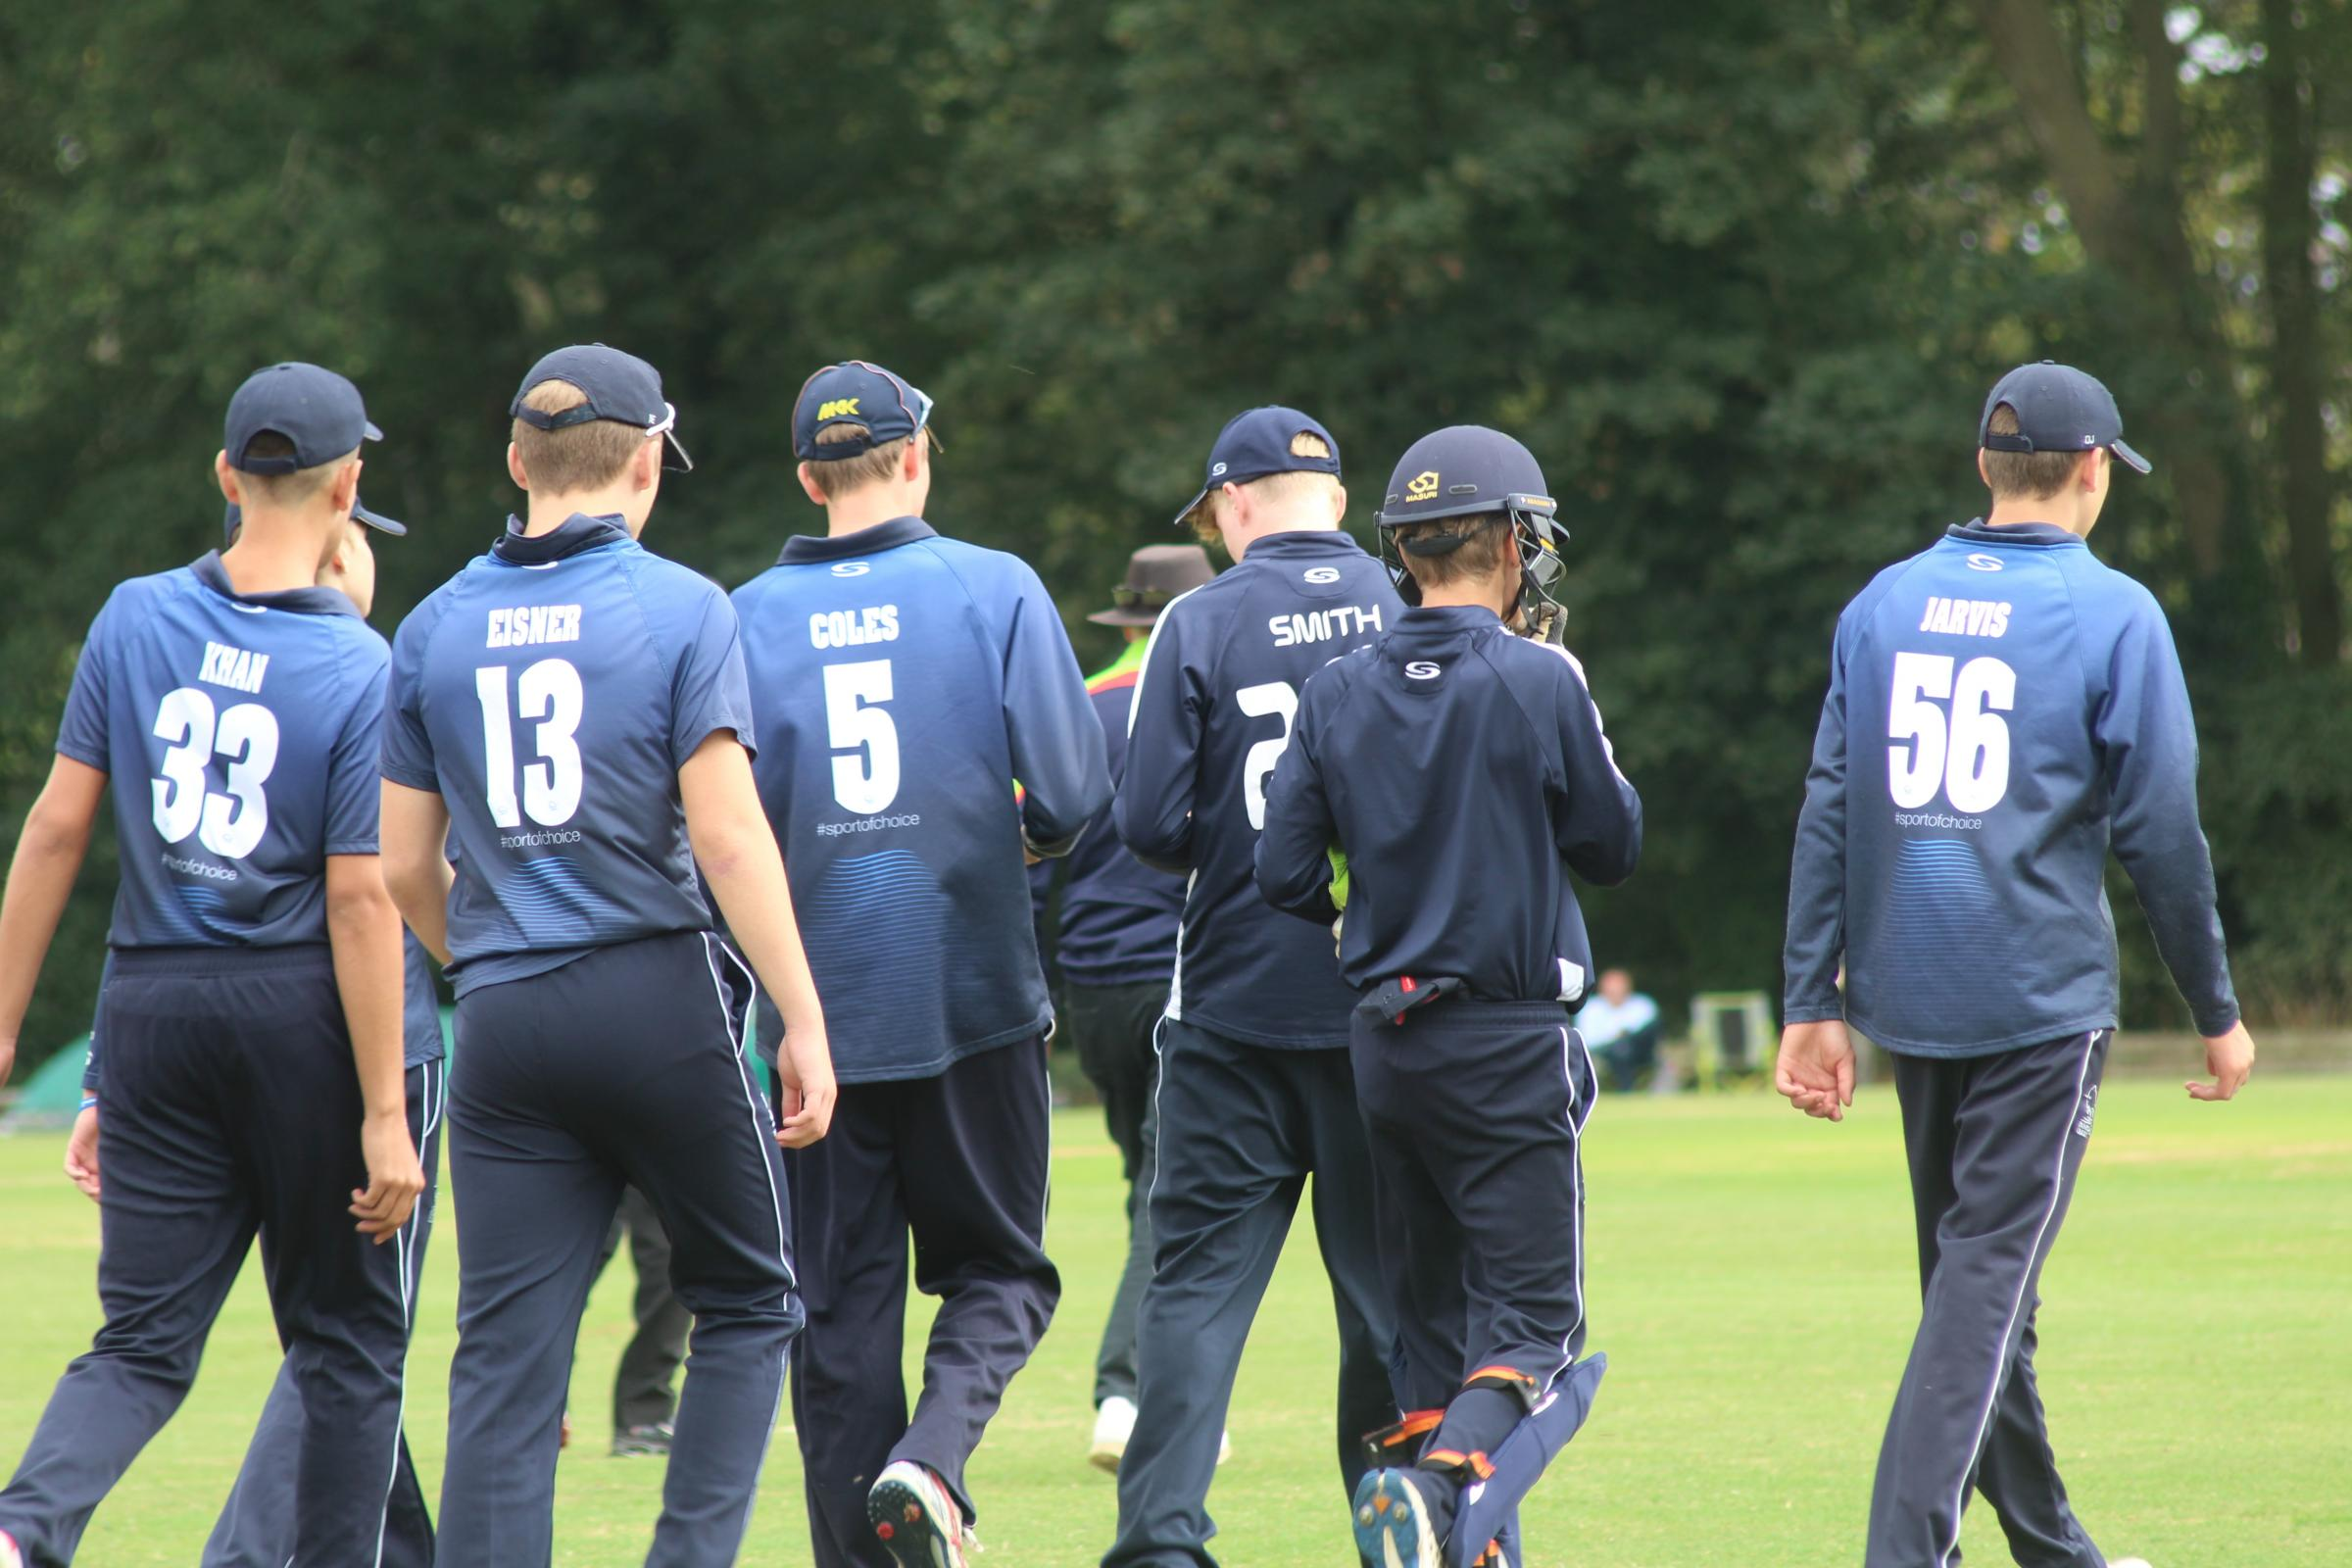 Oxfordshire Under 15s leave the field following their semi-final victory over Sussex